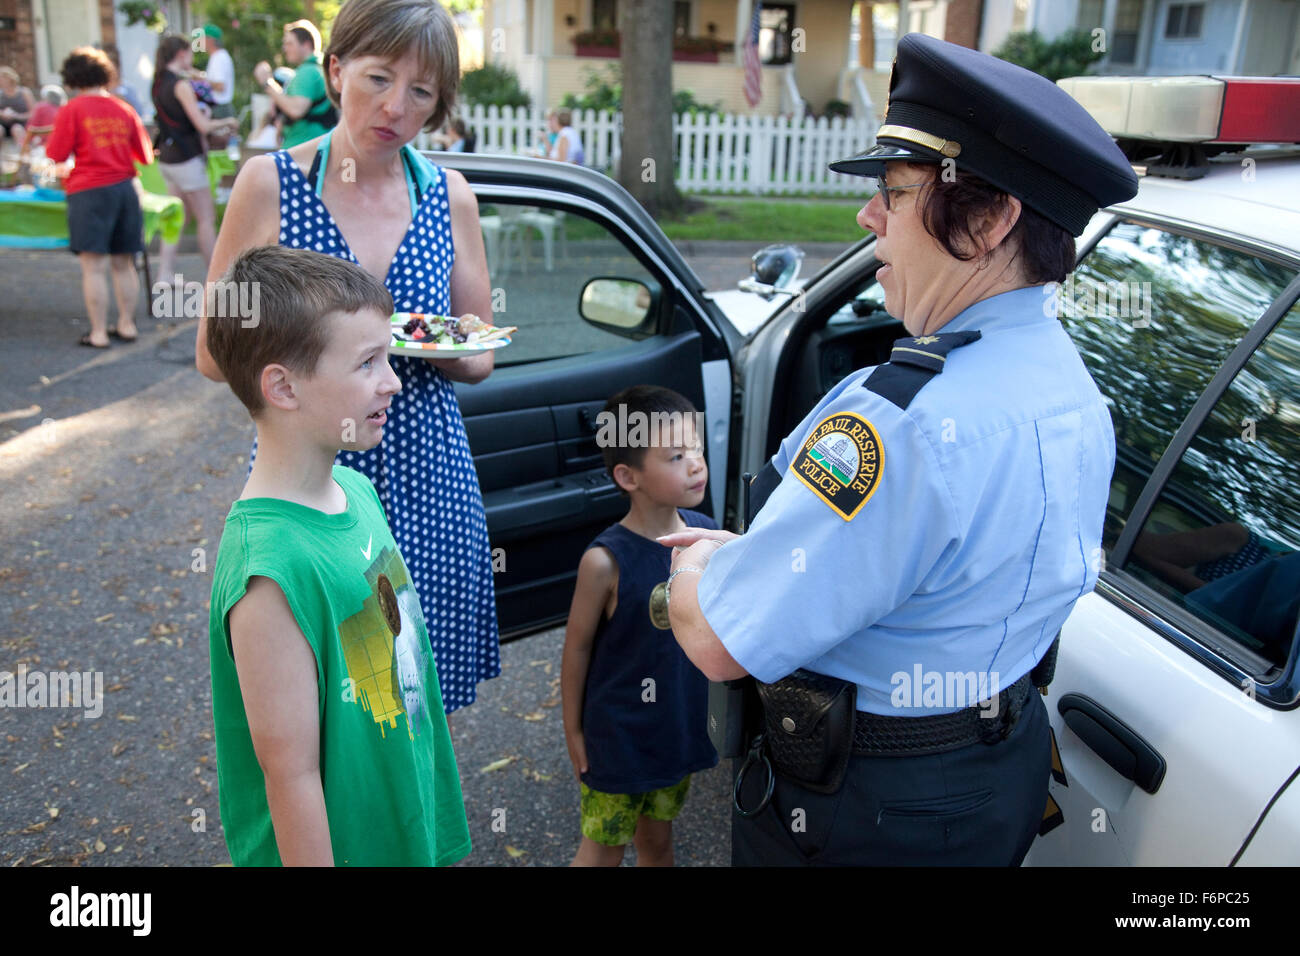 Auxiliary Reserve Police Woman Talking To Boy Age 9